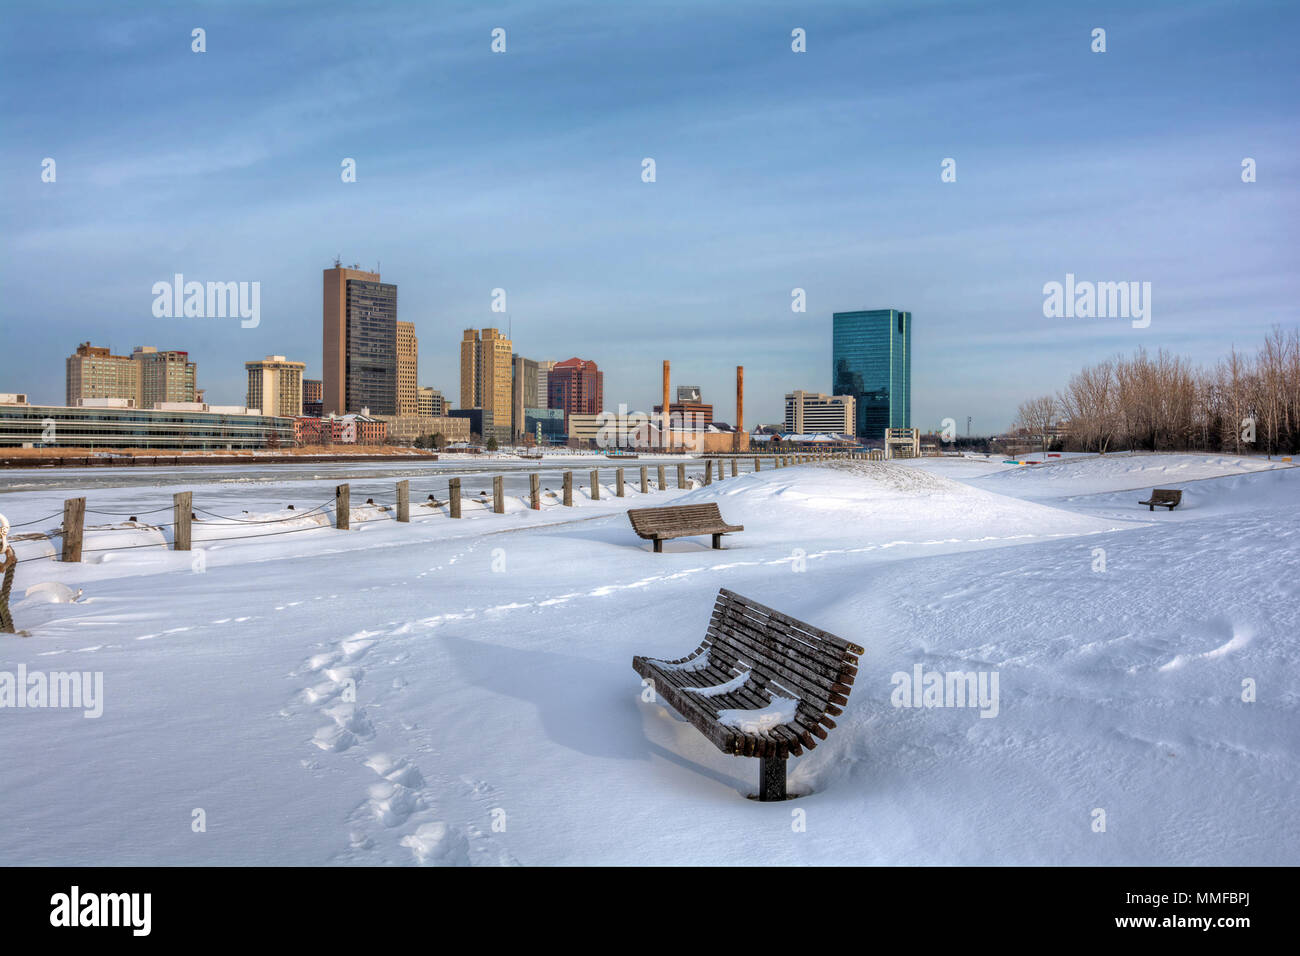 A view of downtown Toledo Ohio's skyline from across the frozen and snow-covered Maumee river a beautiful partly cloudy blue sky. Stock Photo